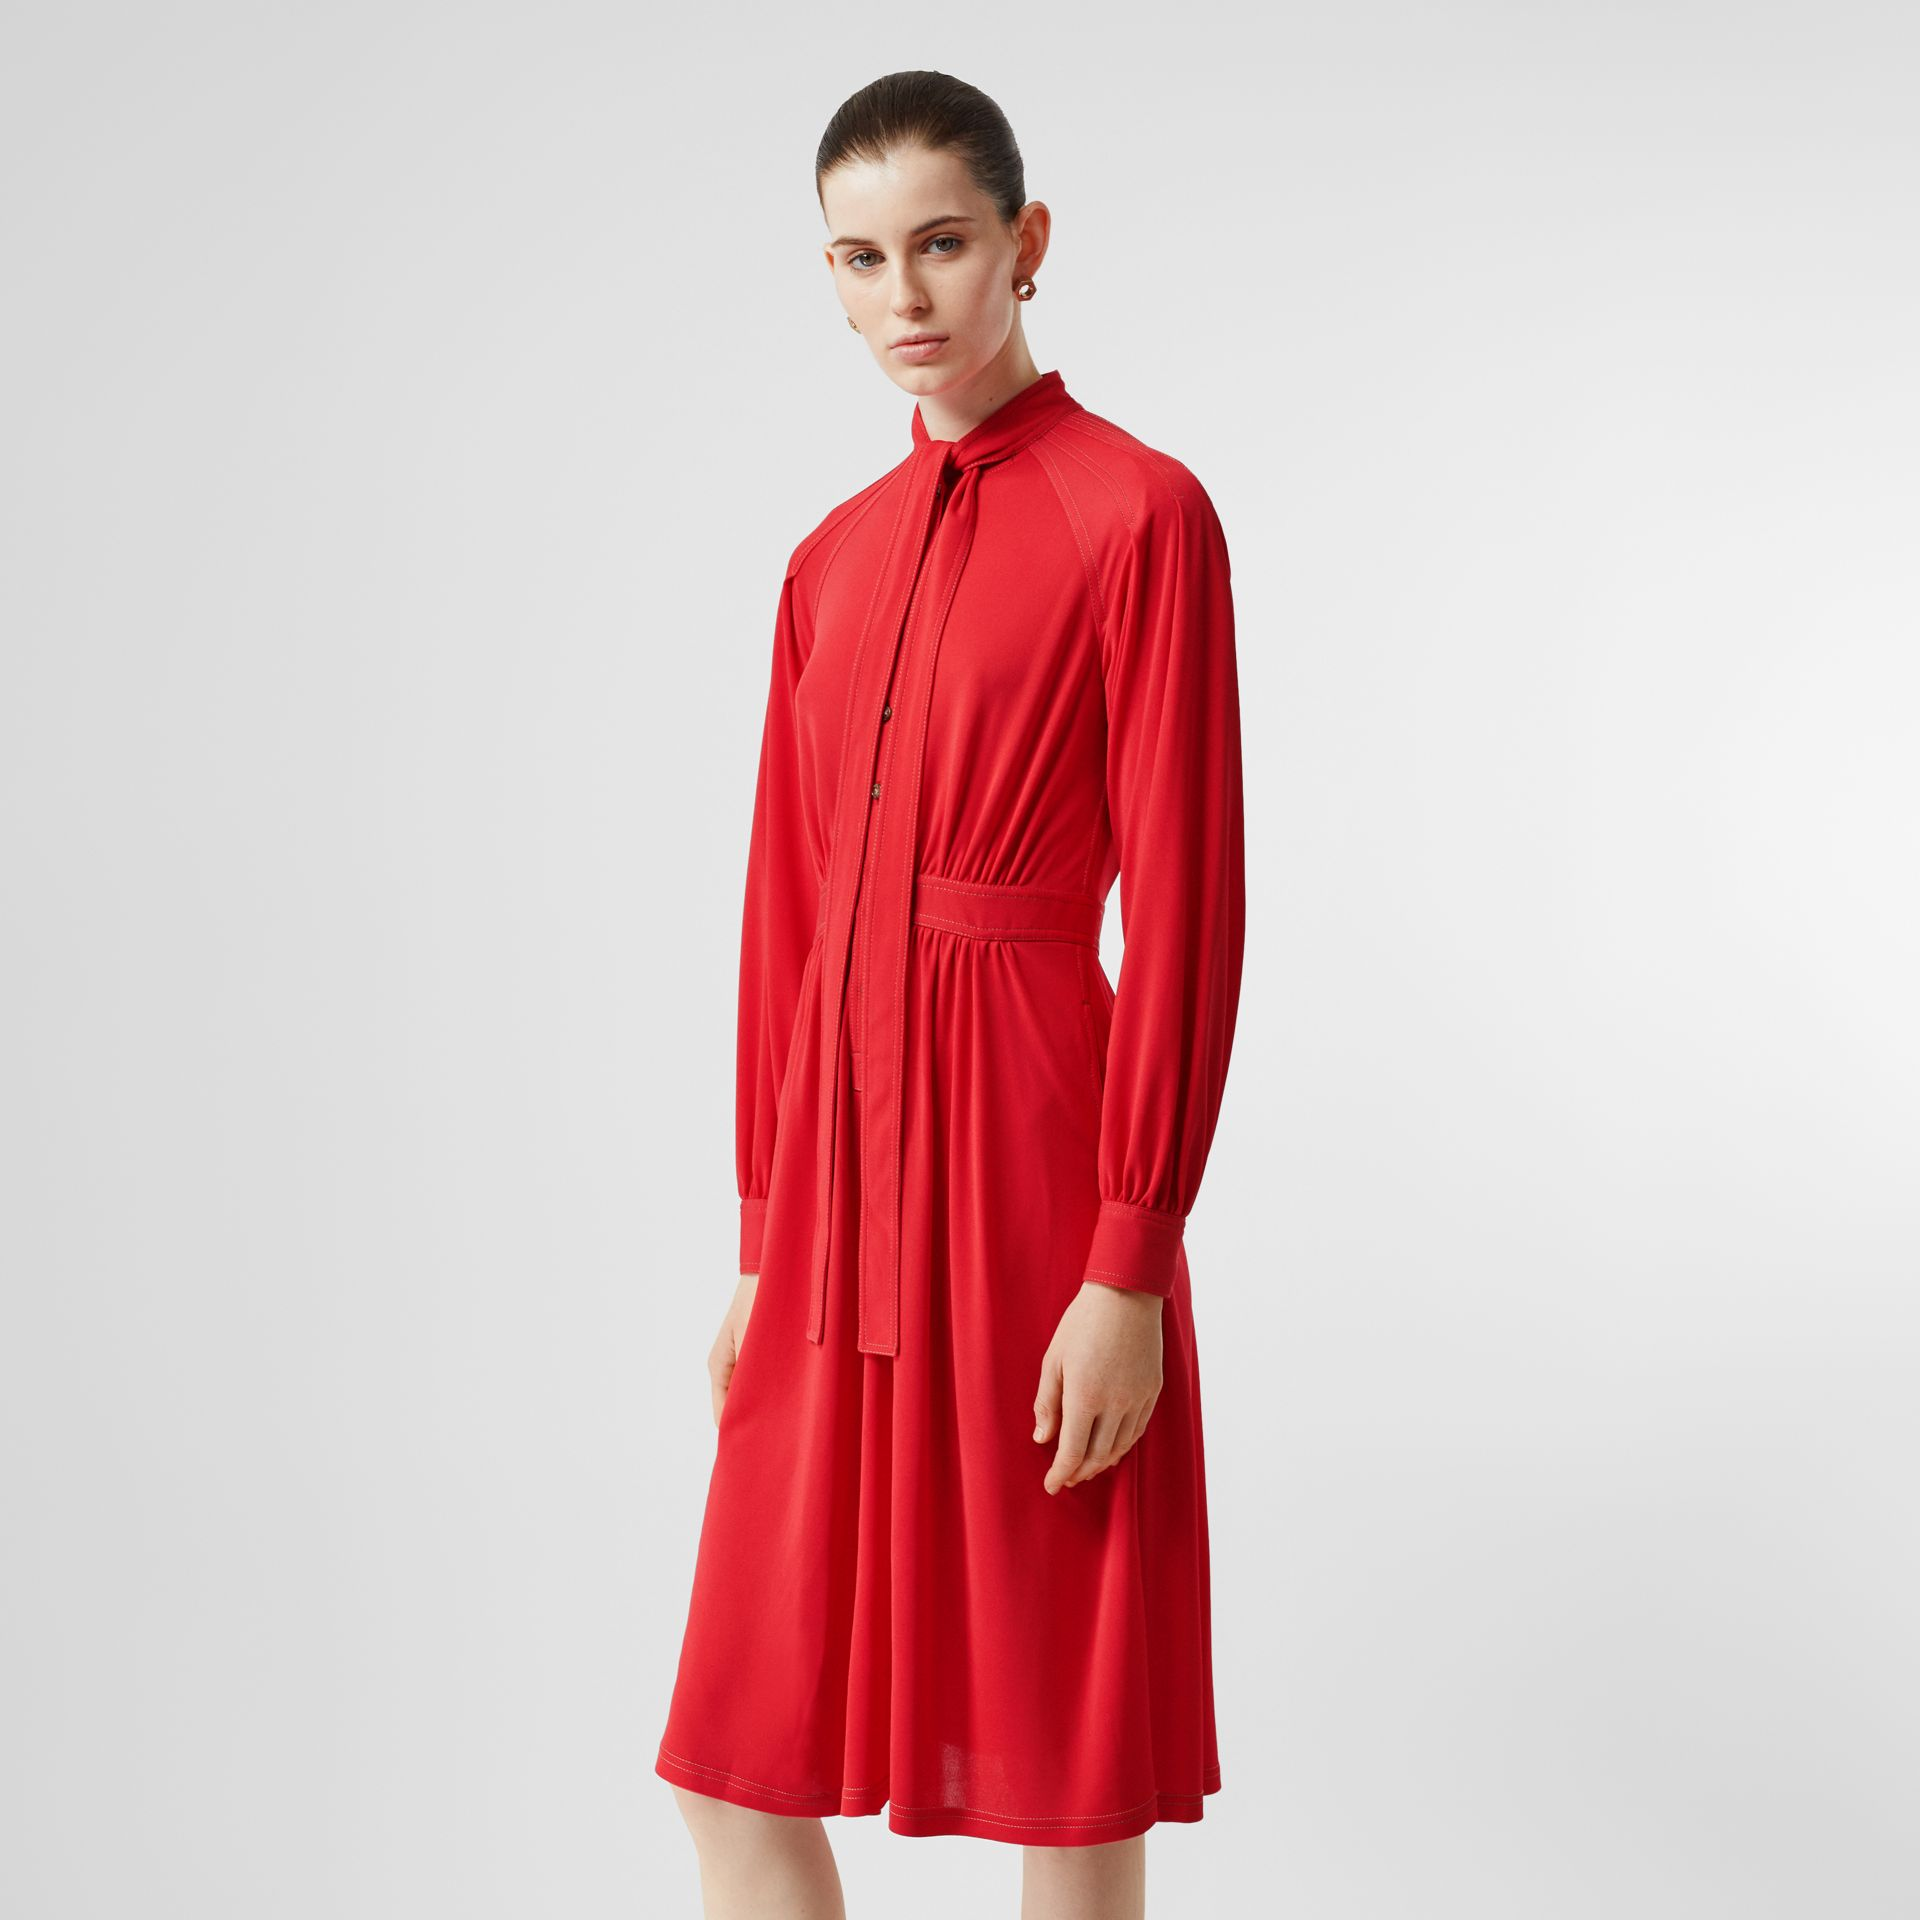 Topstitch Detail Jersey Tie-neck Dress in Bright Red - Women | Burberry Singapore - gallery image 5